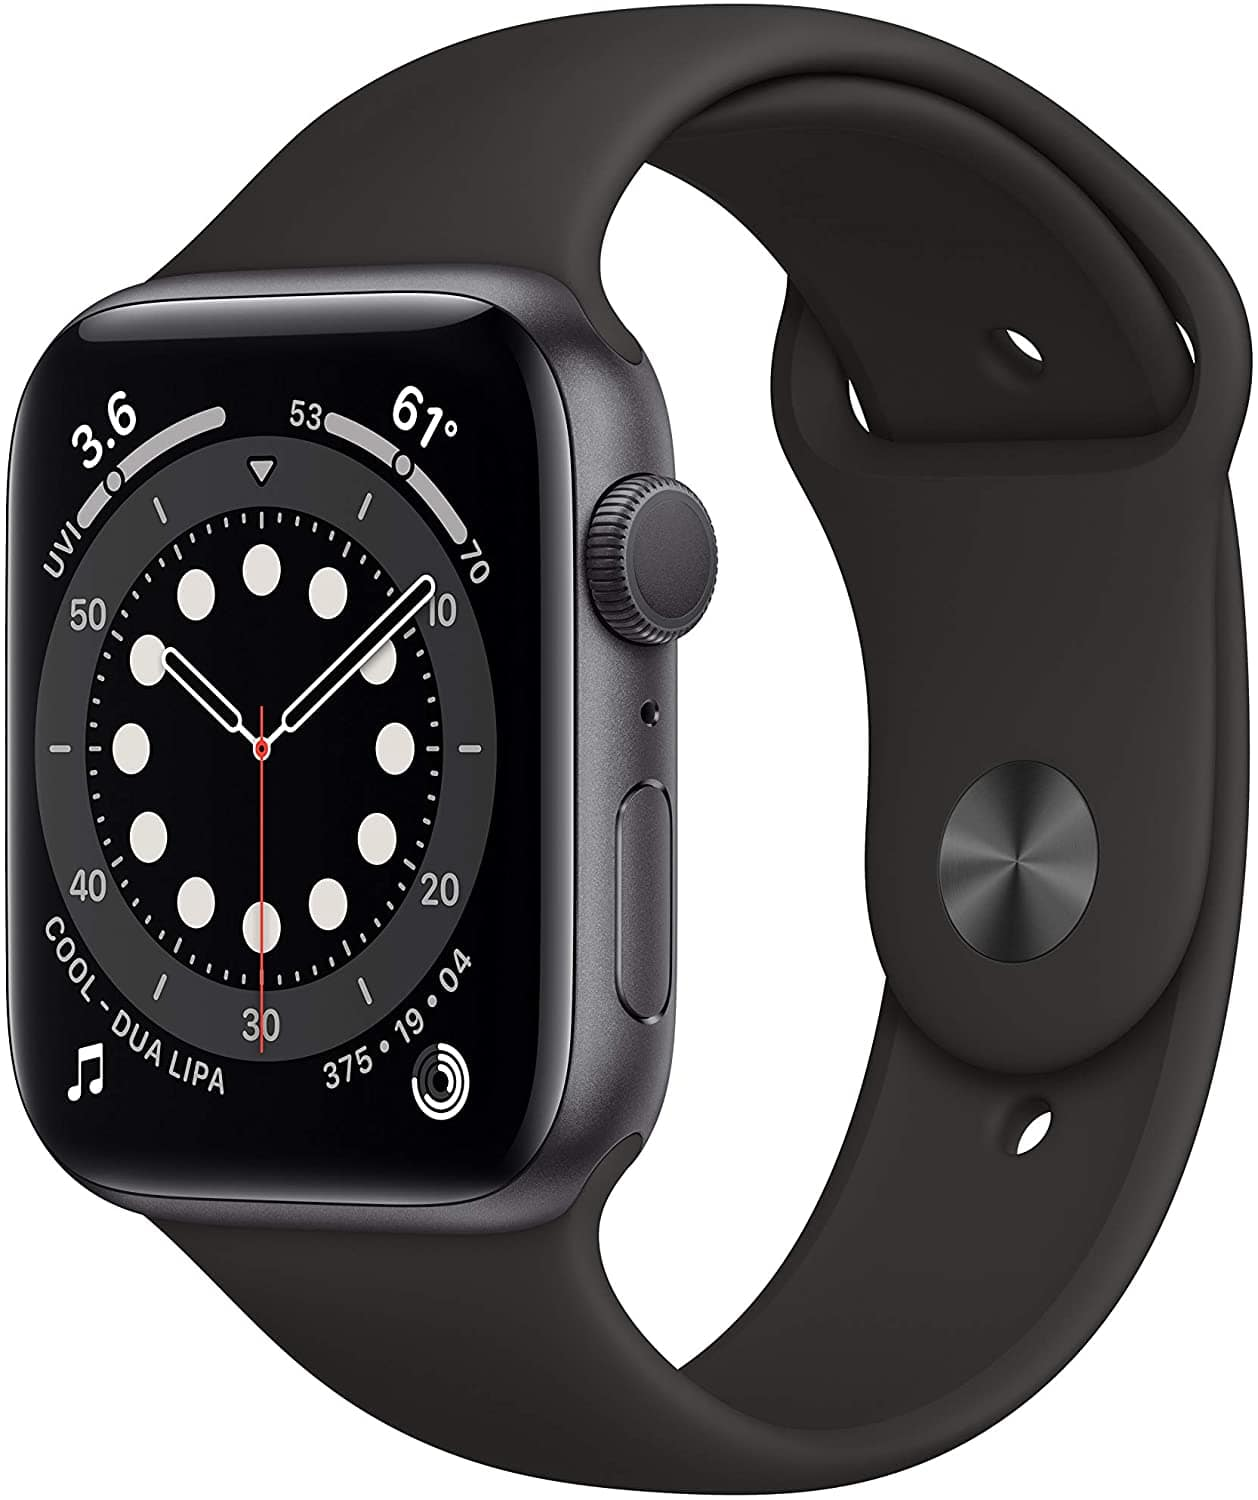 Apple Watch Series 6 (GPS, 44mm) - Space Gray Aluminum Case with Black Sport Band - Amazon - $380 - Free Shipping